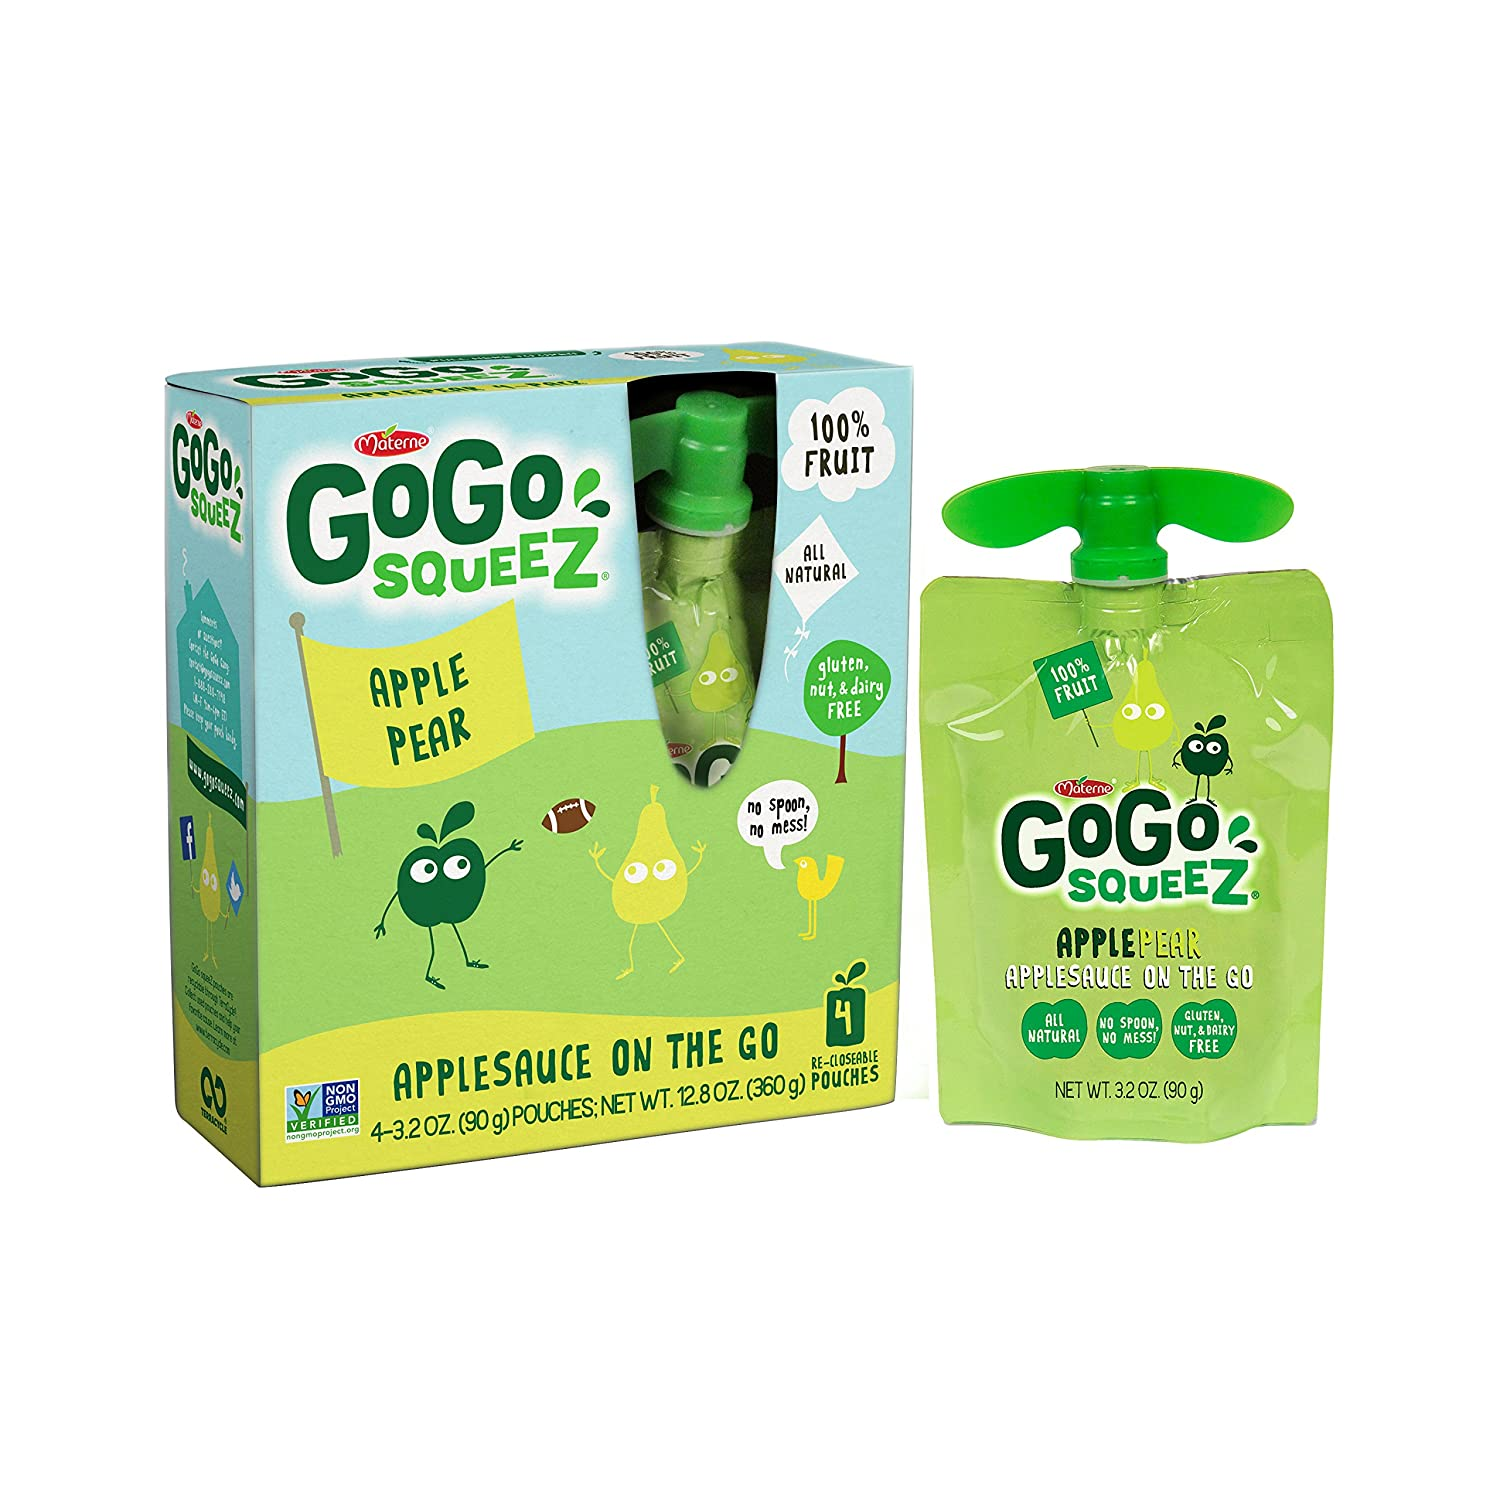 GoGo squeeZ Applesauce on the Go, Apple Pear, 3.2 Ounce Portable BPA-Free Pouches, Gluten-Free, 4 Total Pouches